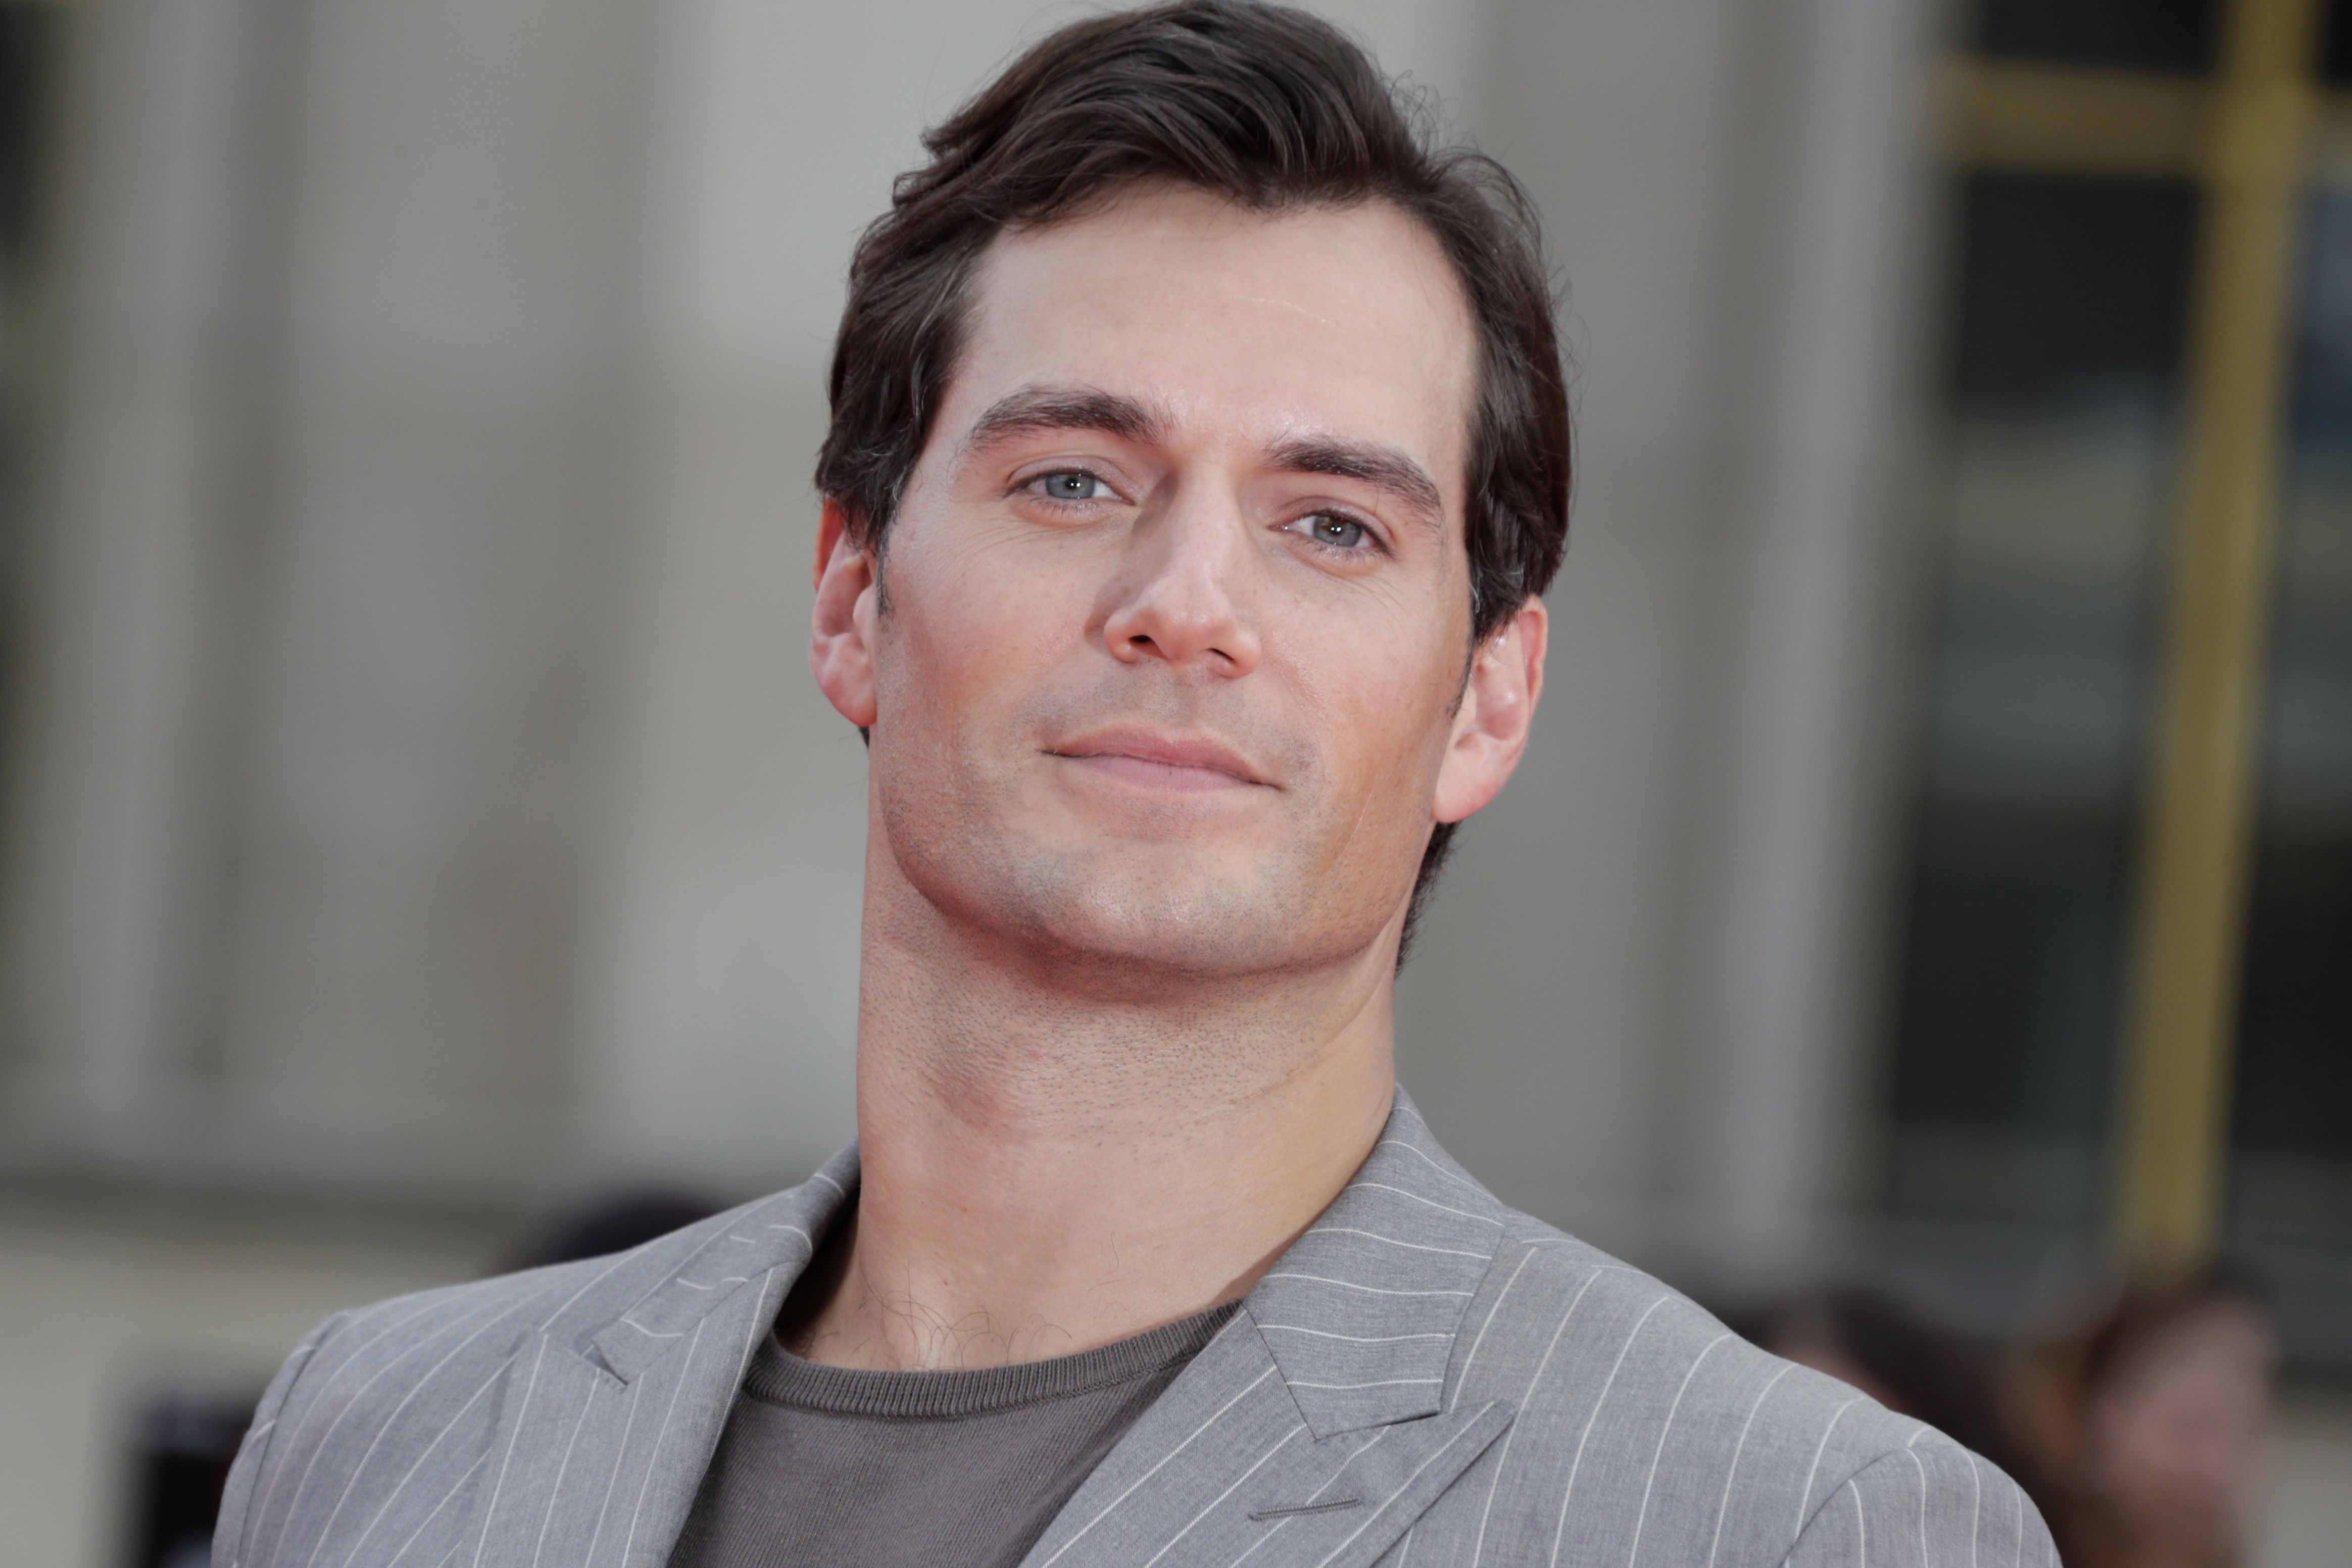 Henry Cavill cumpleaños - Superman, The Witcher y Lobezno